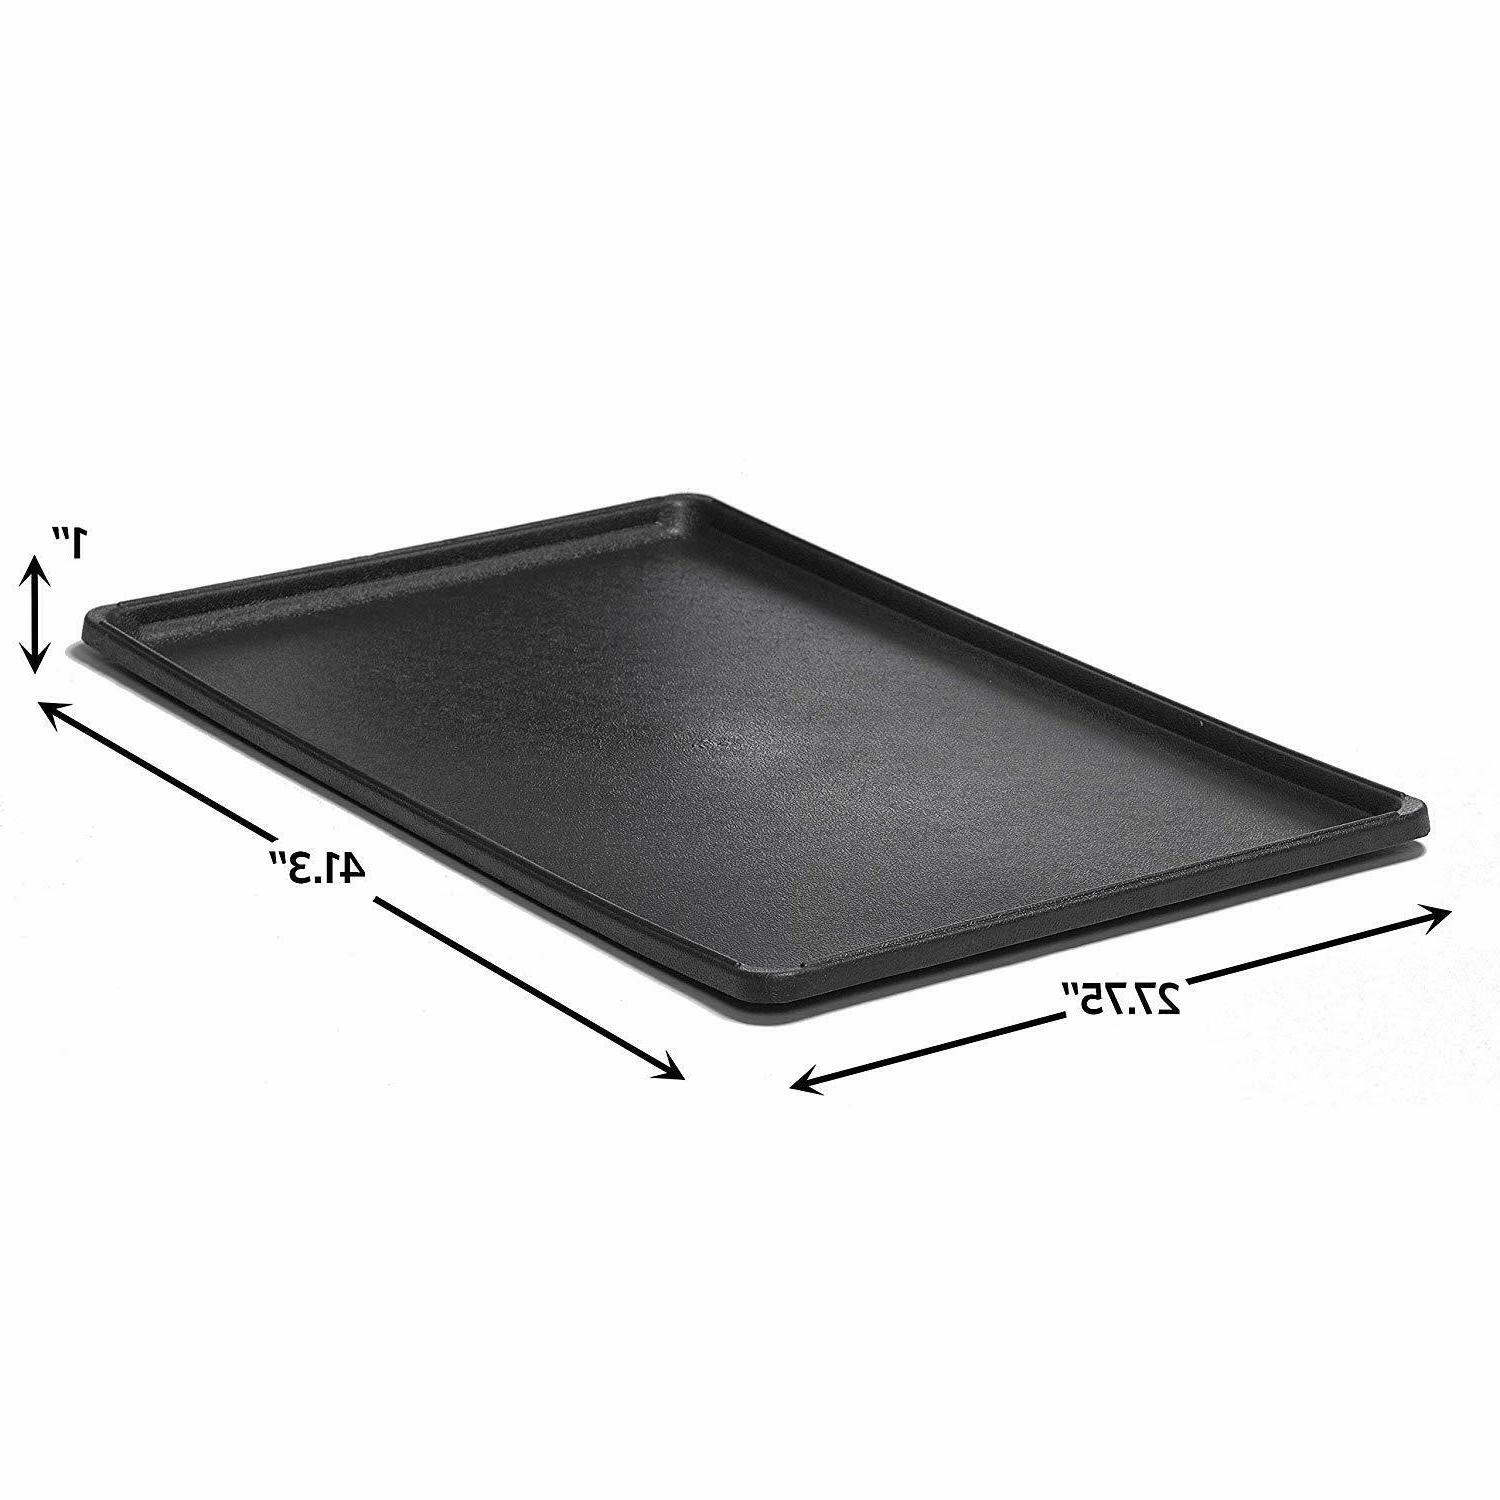 Dog Kennel Replacement Cage Floor Pan Dogs Rabbit Crate 42